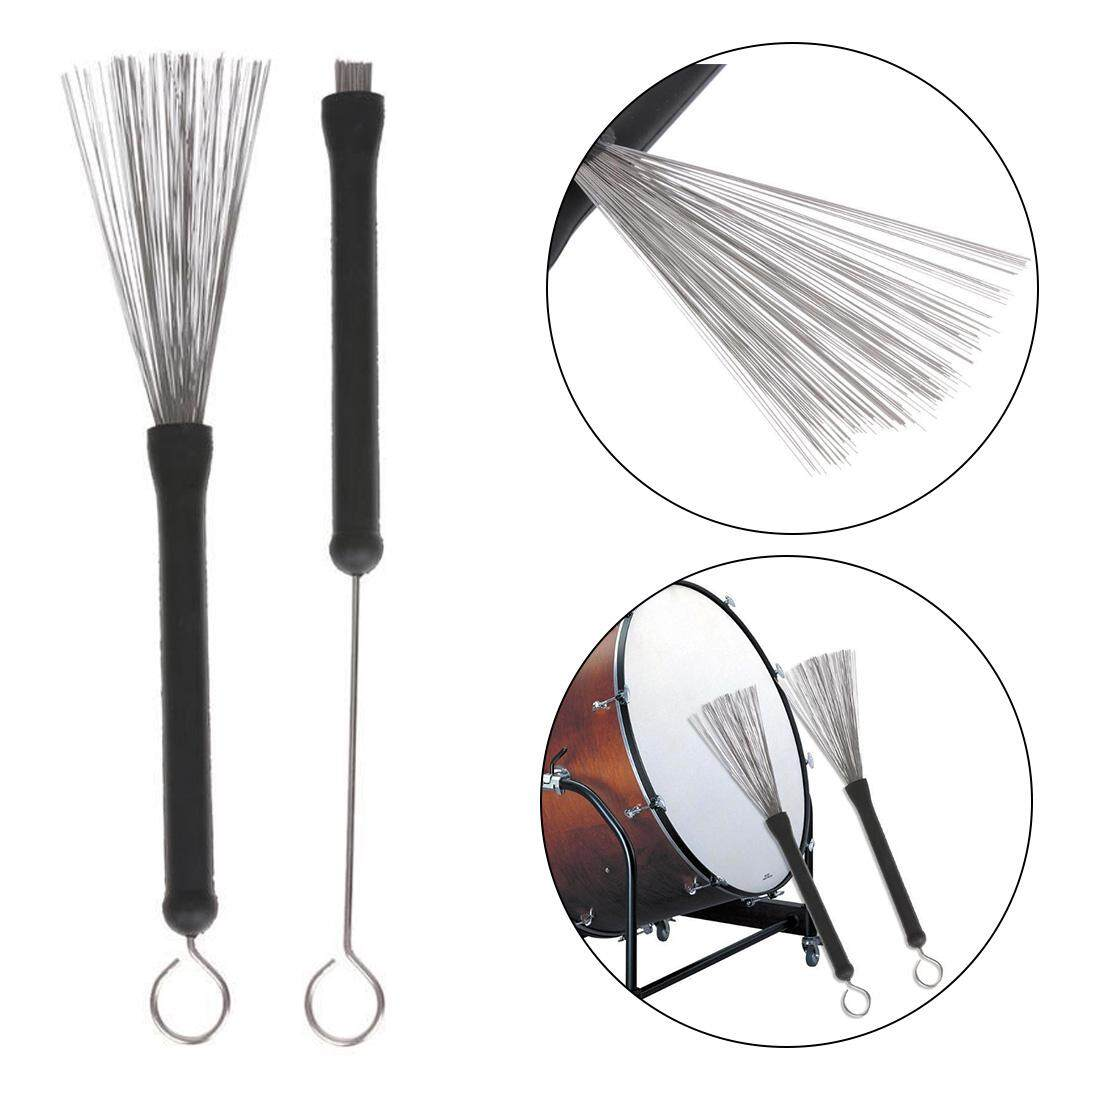 Wire Retractable Drum Brushes Sticks Retractable Loop End Drum Brushes For Jazz Drum Stick Musical Accessories